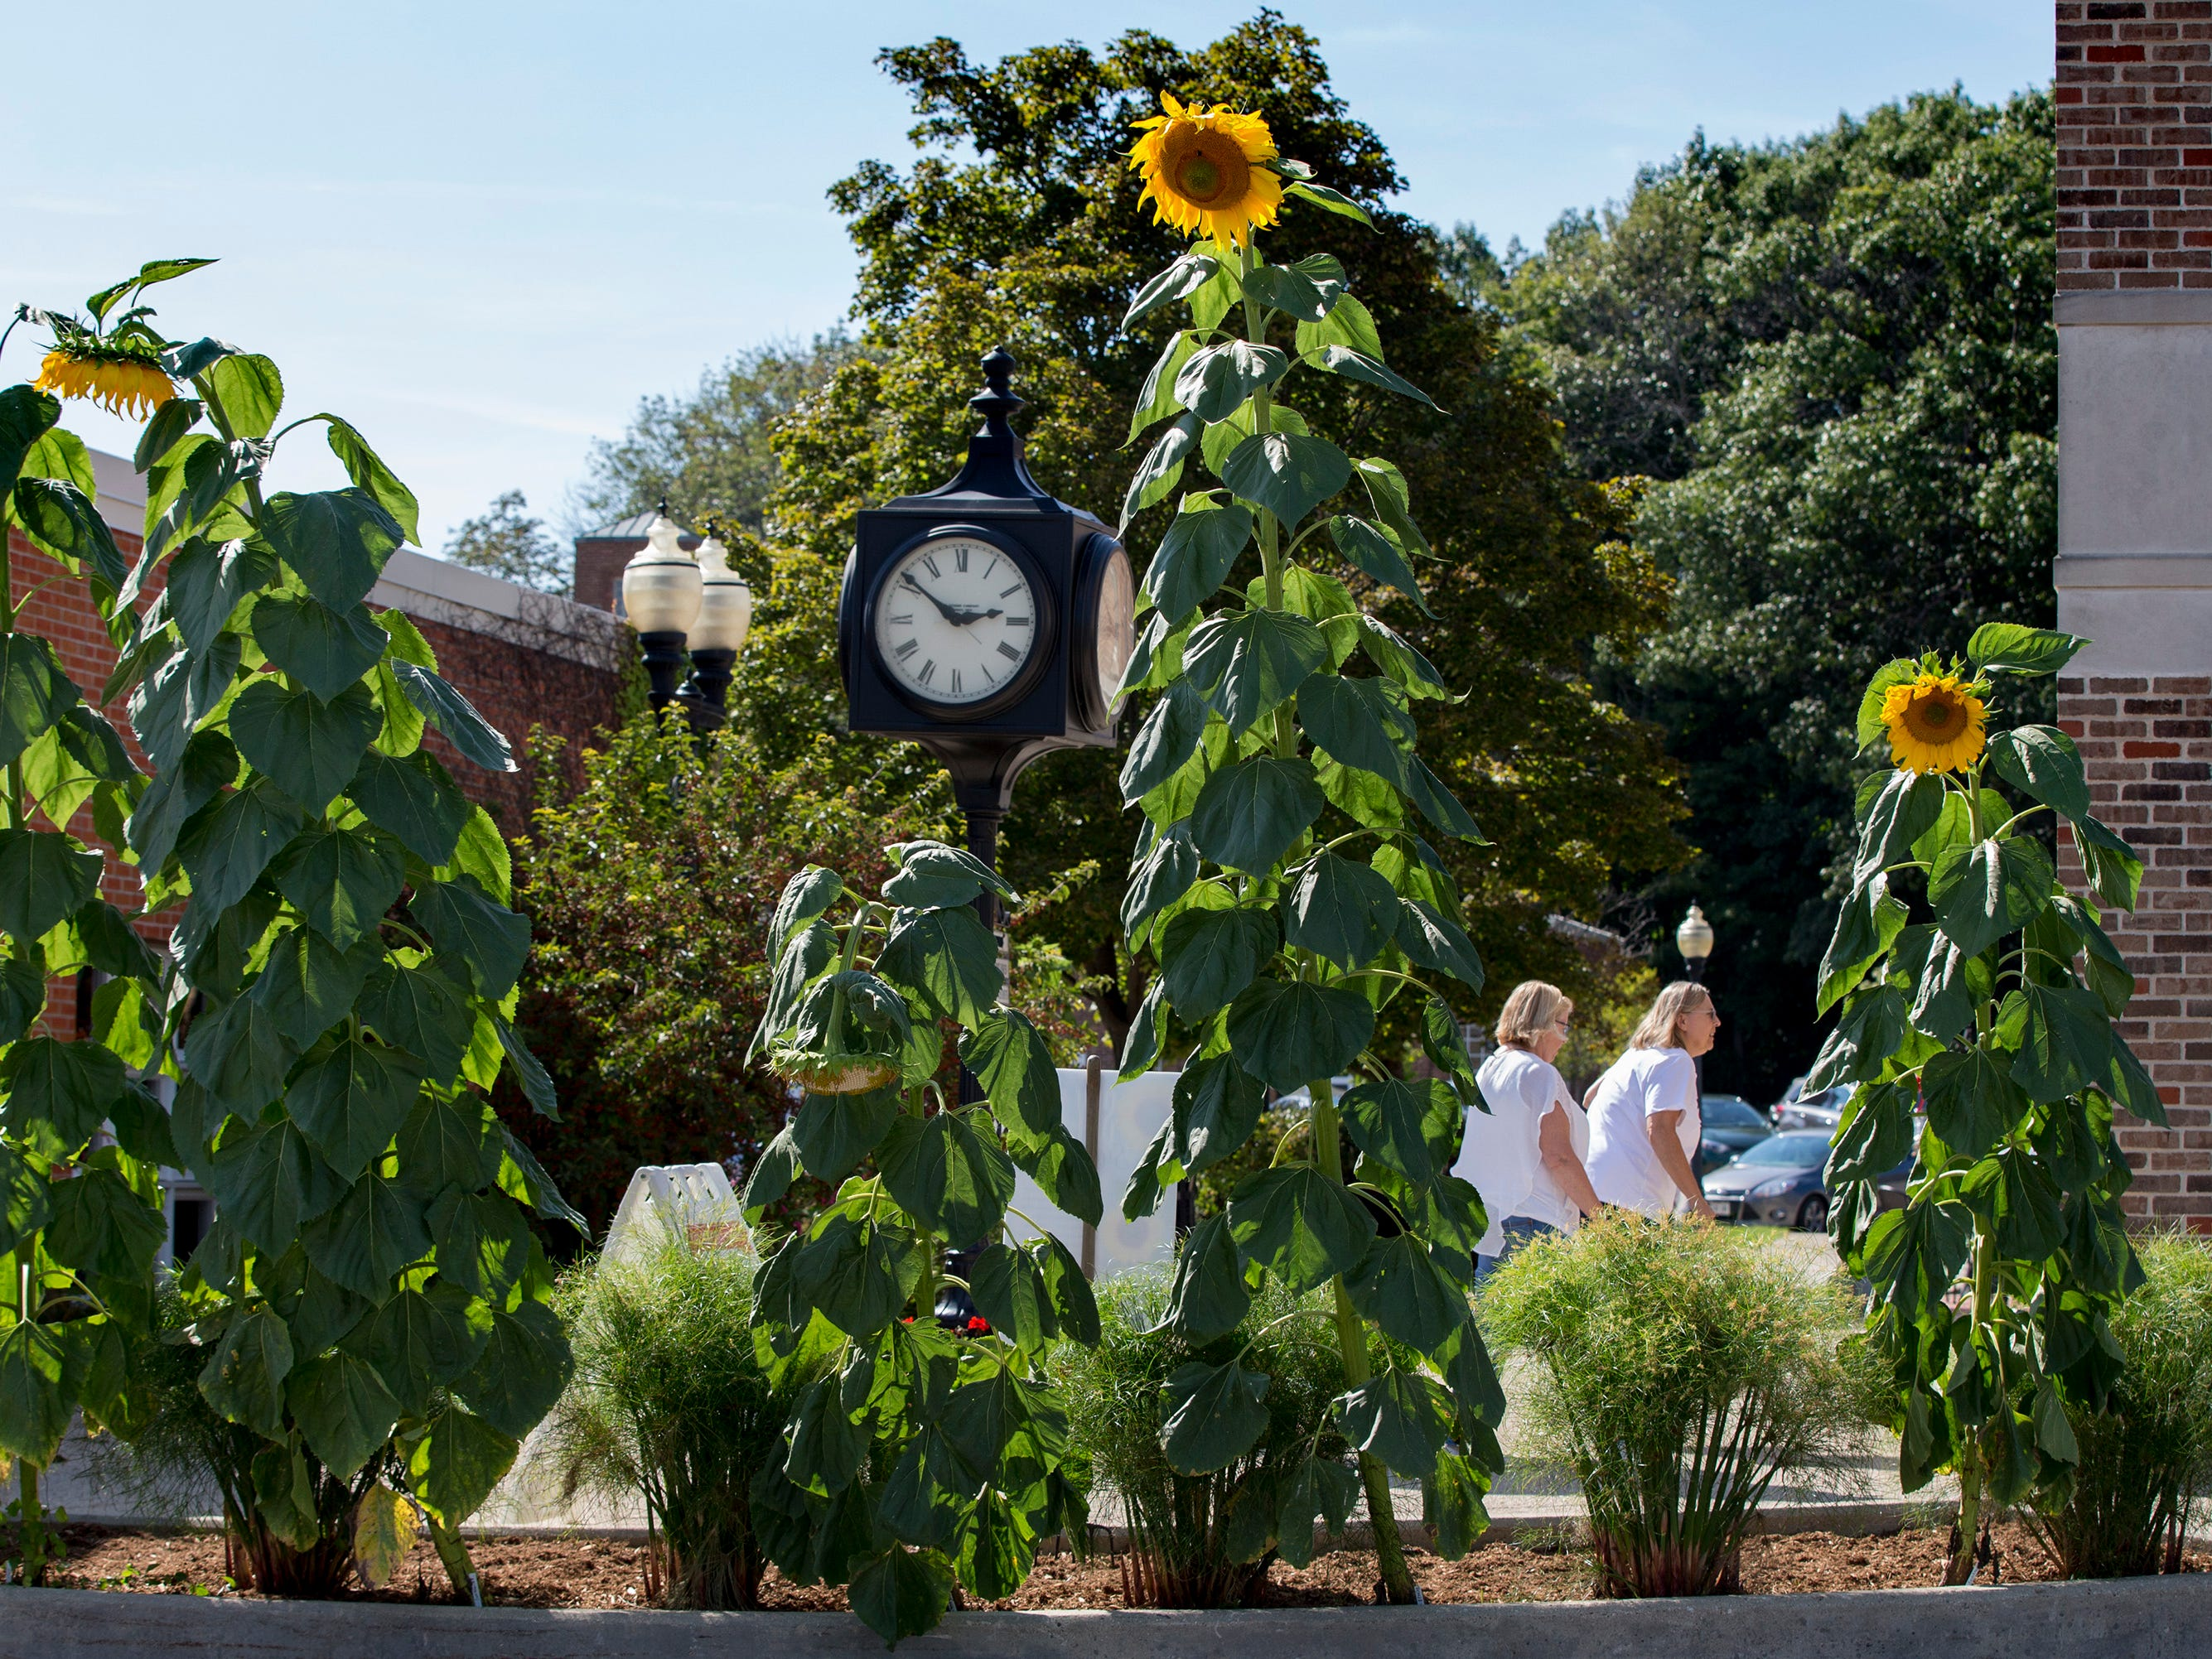 Customers walk past one of the three mammoth Russian sunflowers patches growing along Broad Street in Greendale.